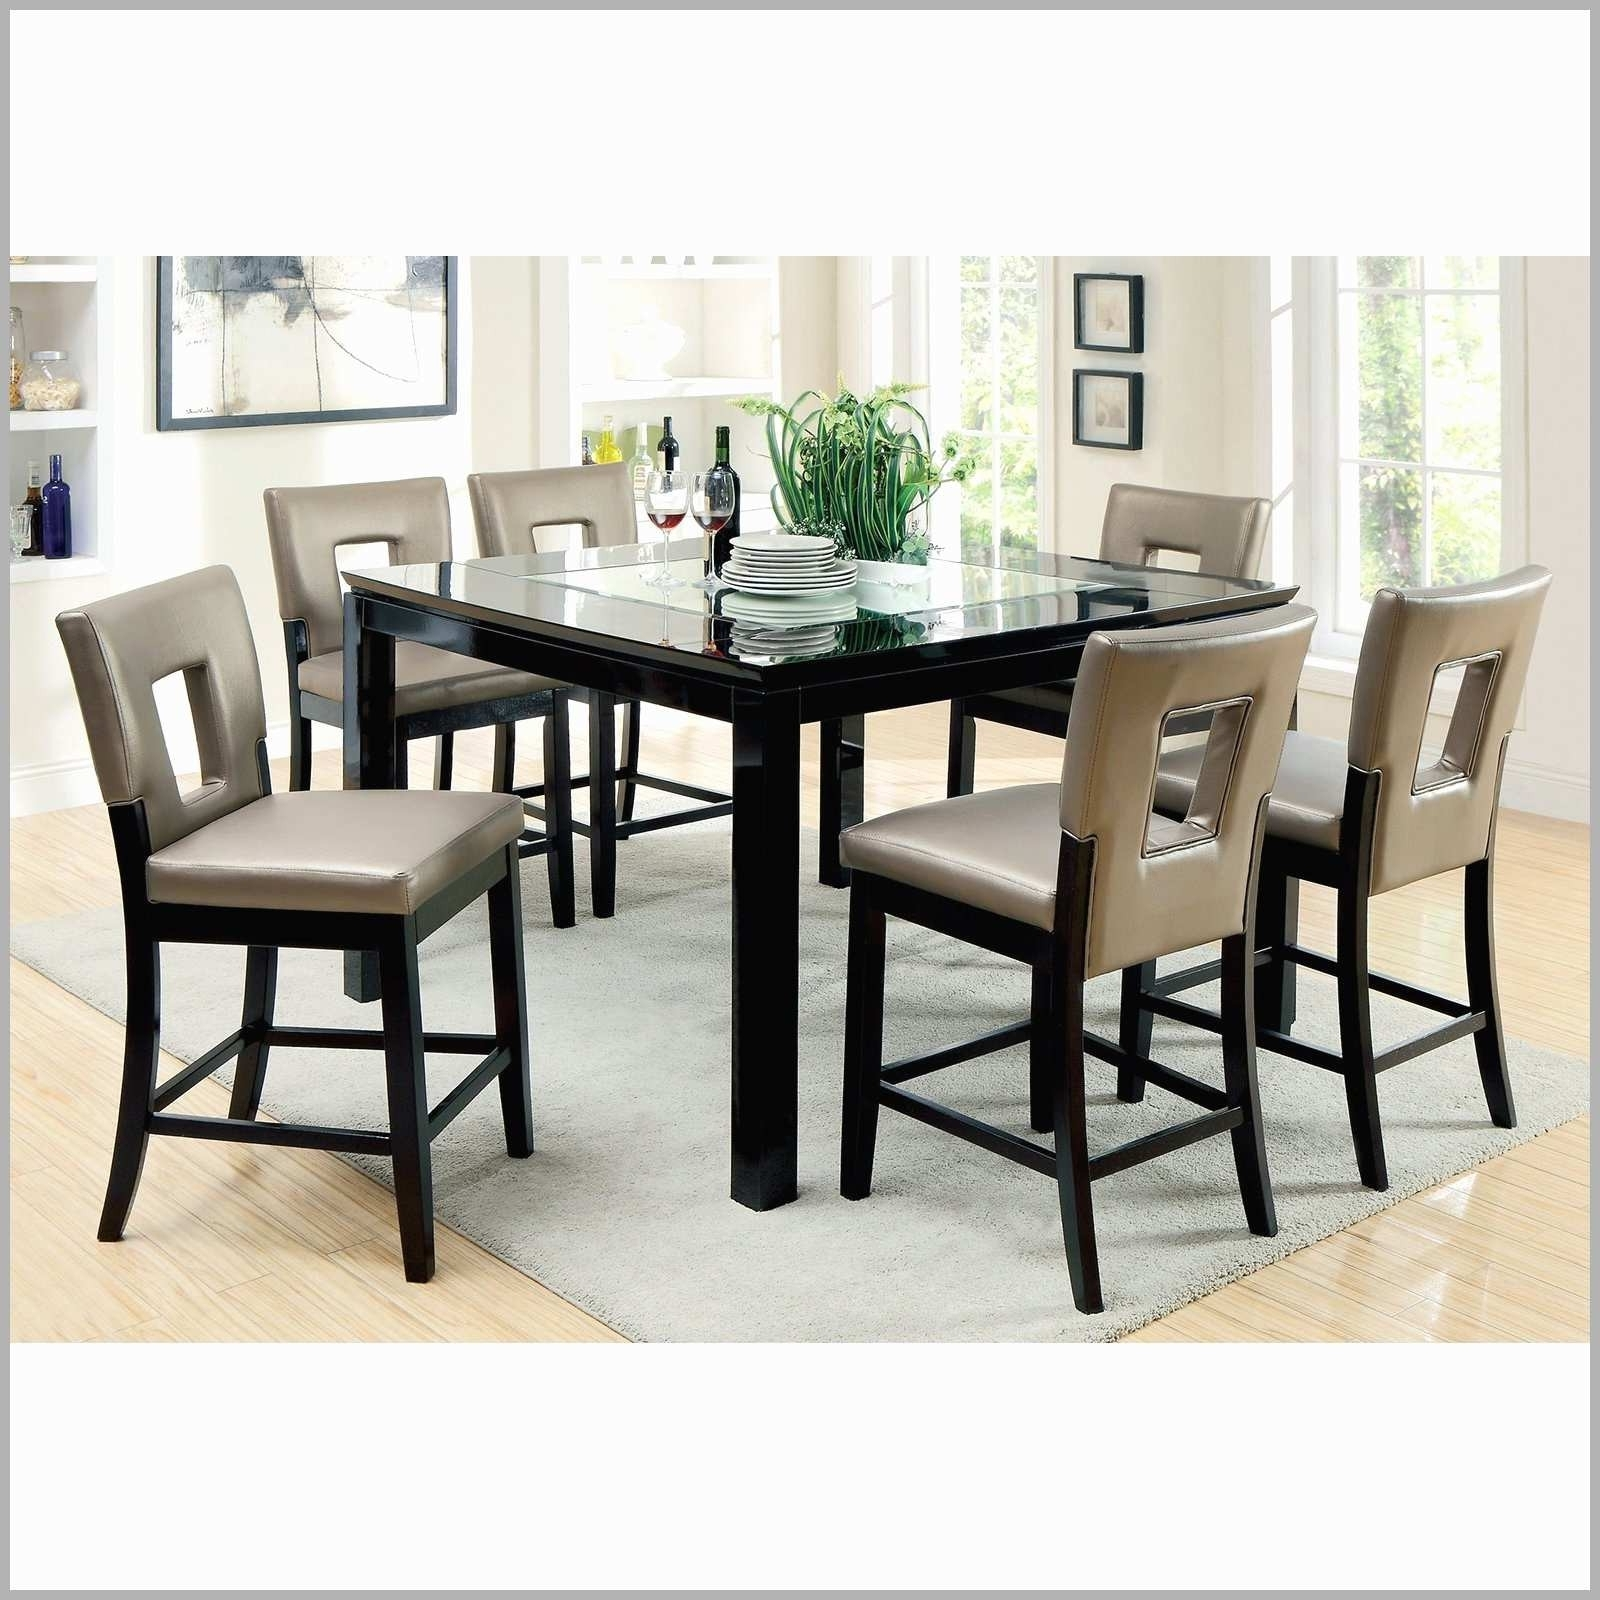 Cheap Dining Table Sets Near Me Awesome 8 Seater Dining Table Set Throughout Newest Dining Tables Set For (View 24 of 25)